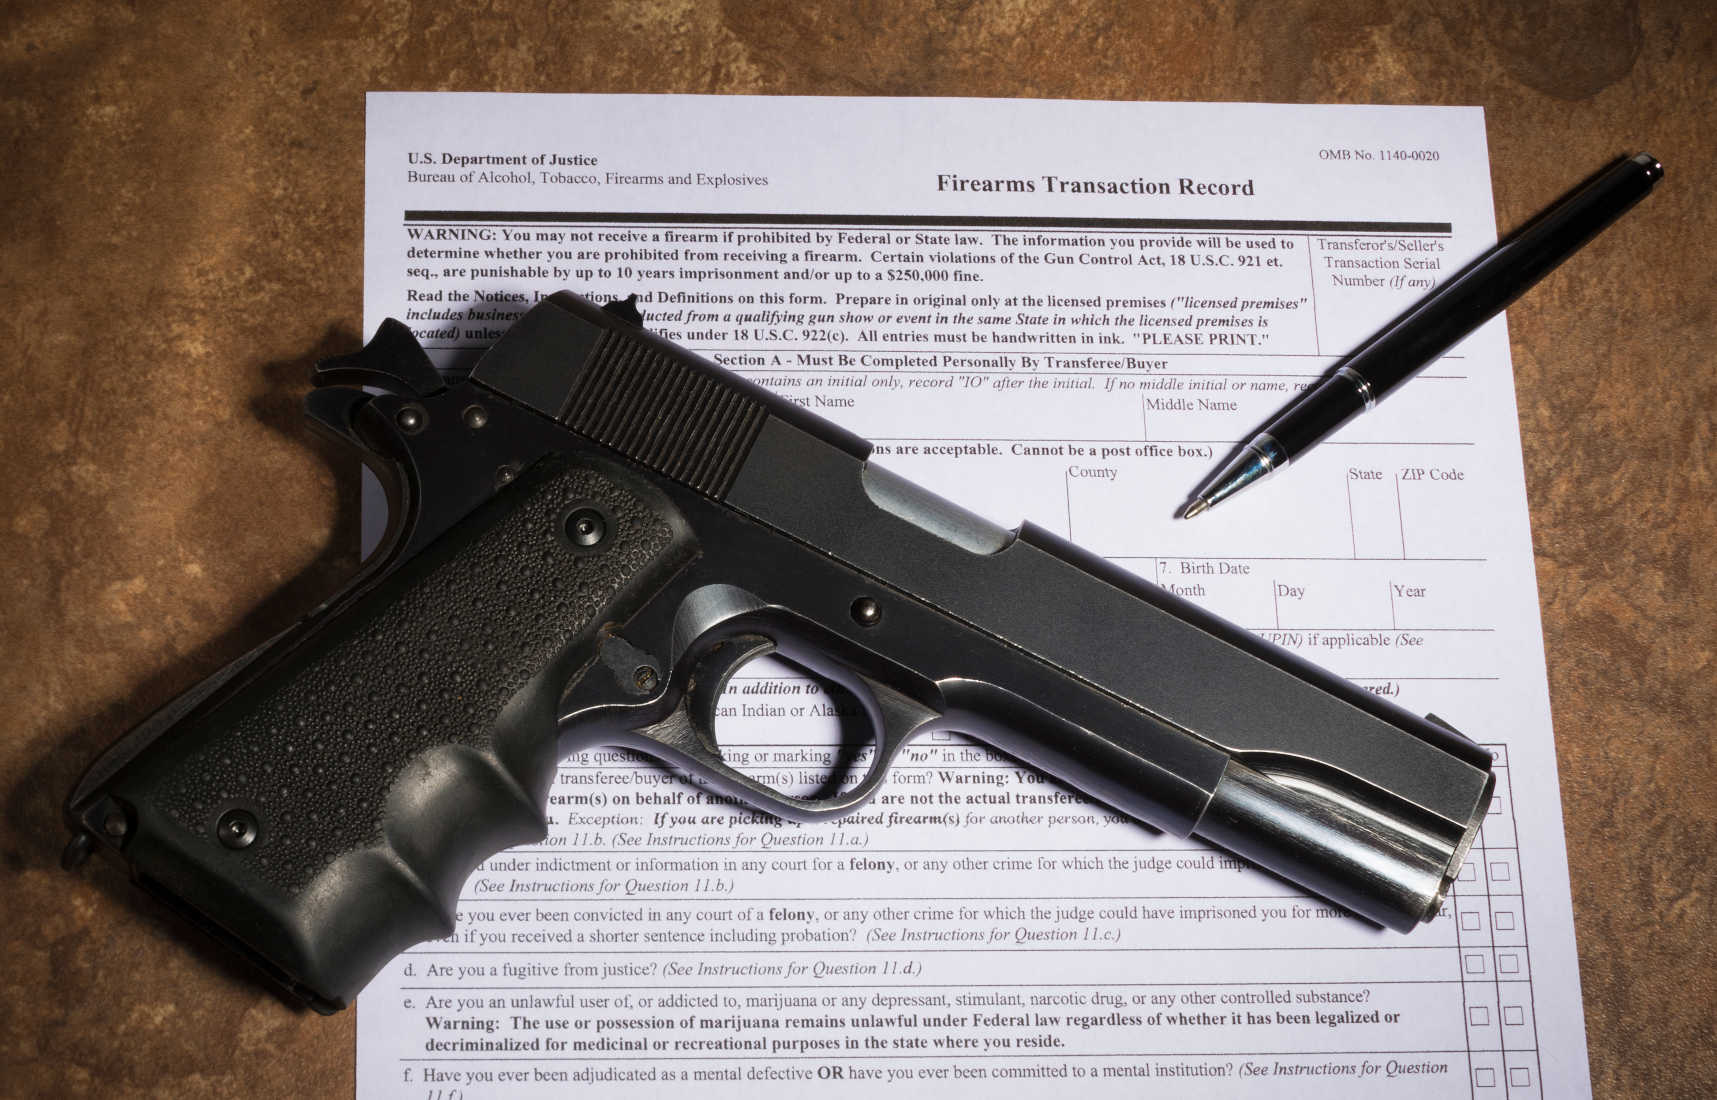 Study: Background Checks Have Made No Difference in California Homicide, Suicide Rates